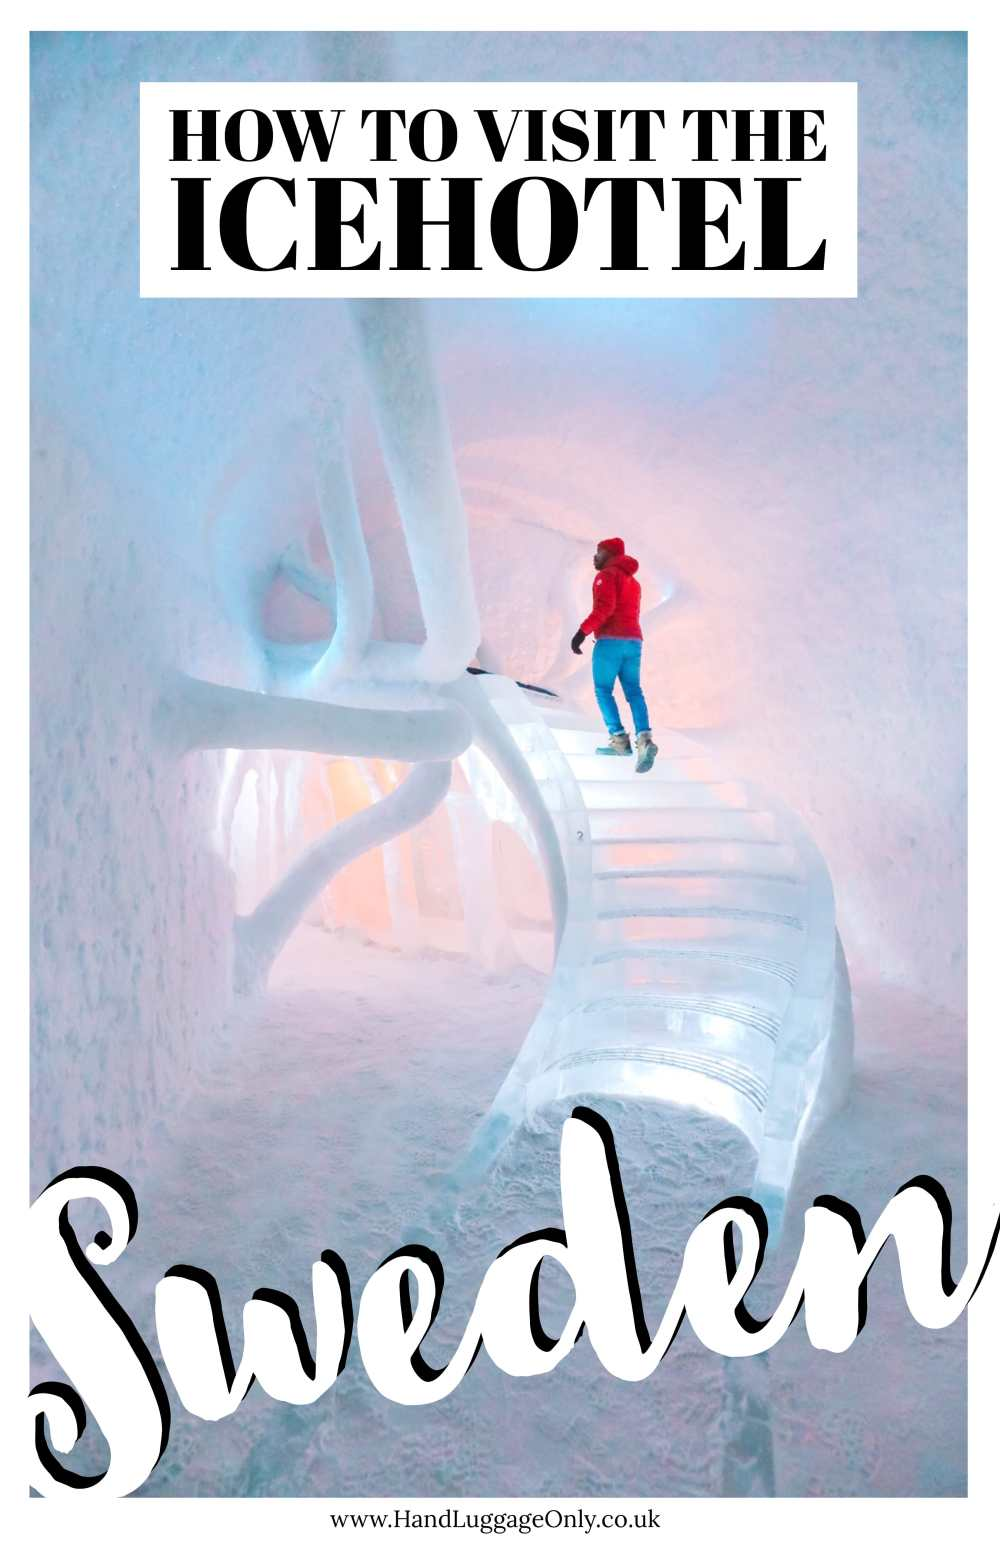 11 Best Things To Do In The ICEHOTEL in Sweden